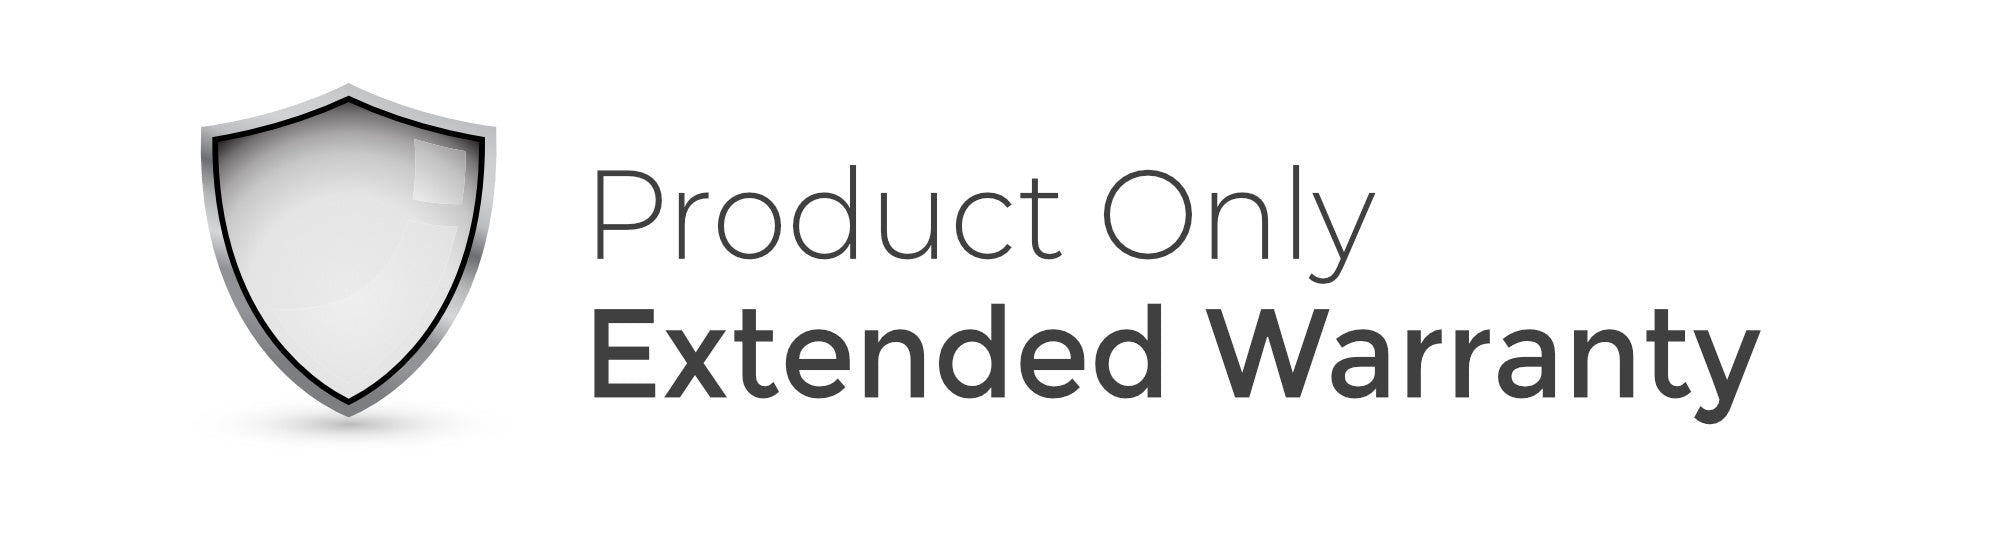 Product Only - Extended Warranty (ML Junior) - Commtel Shop